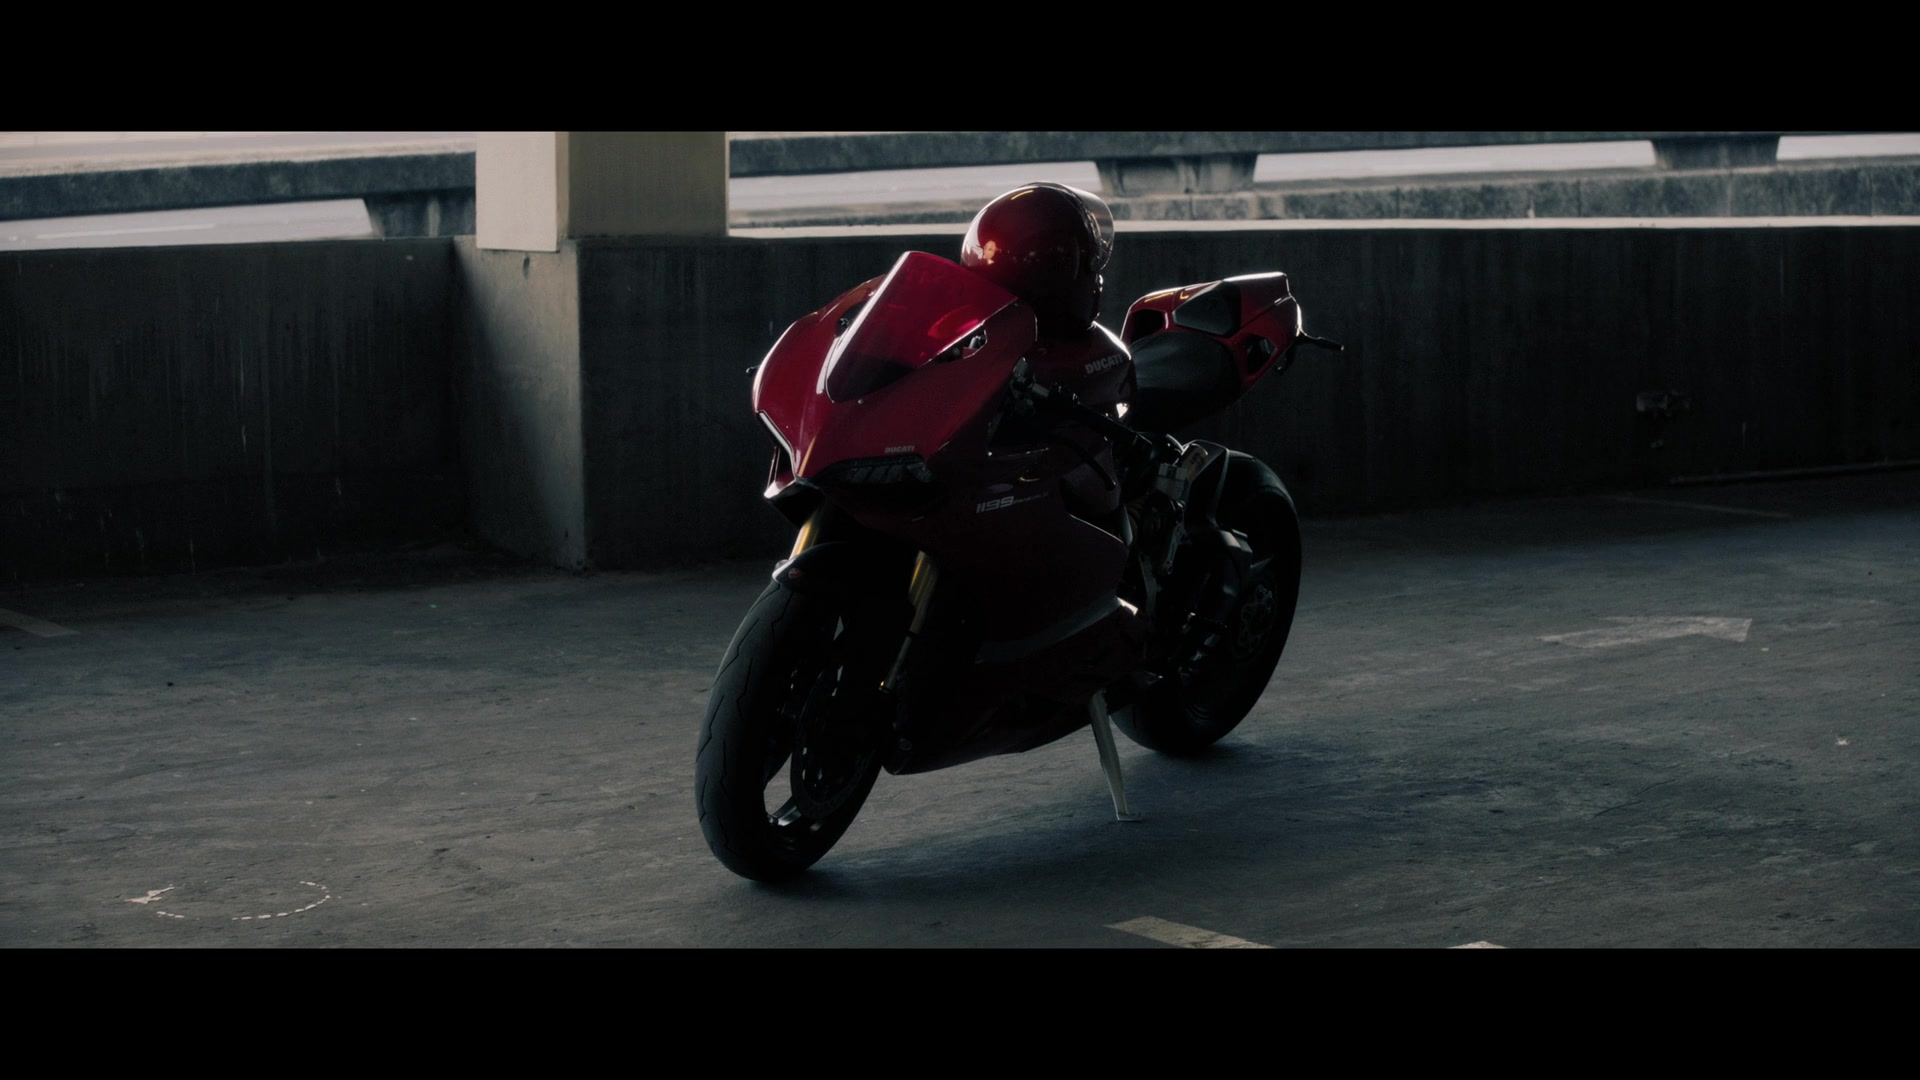 Ducati Red Motorcycle in Good Omens - Season 1, Episode 5